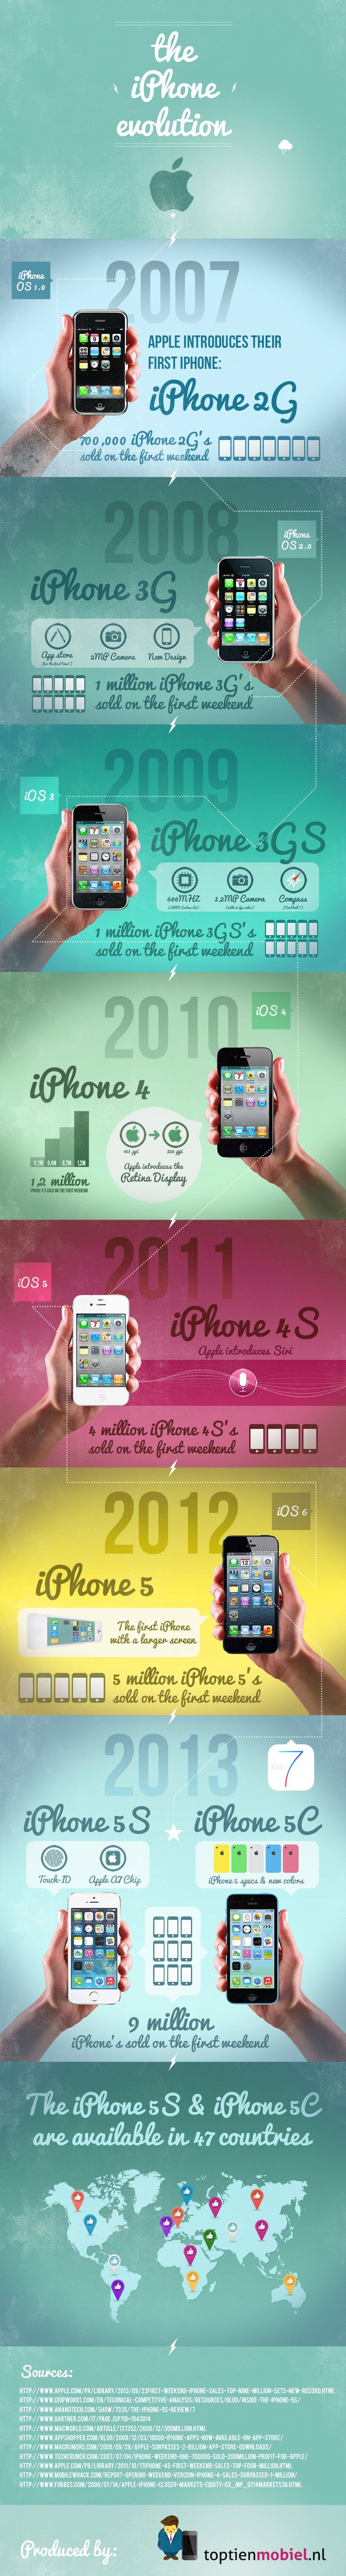 #Infographic: The iPhone Evolution | Shows the evolution of Apple's #iPhone since its inception | via @MobileMW  #mobile